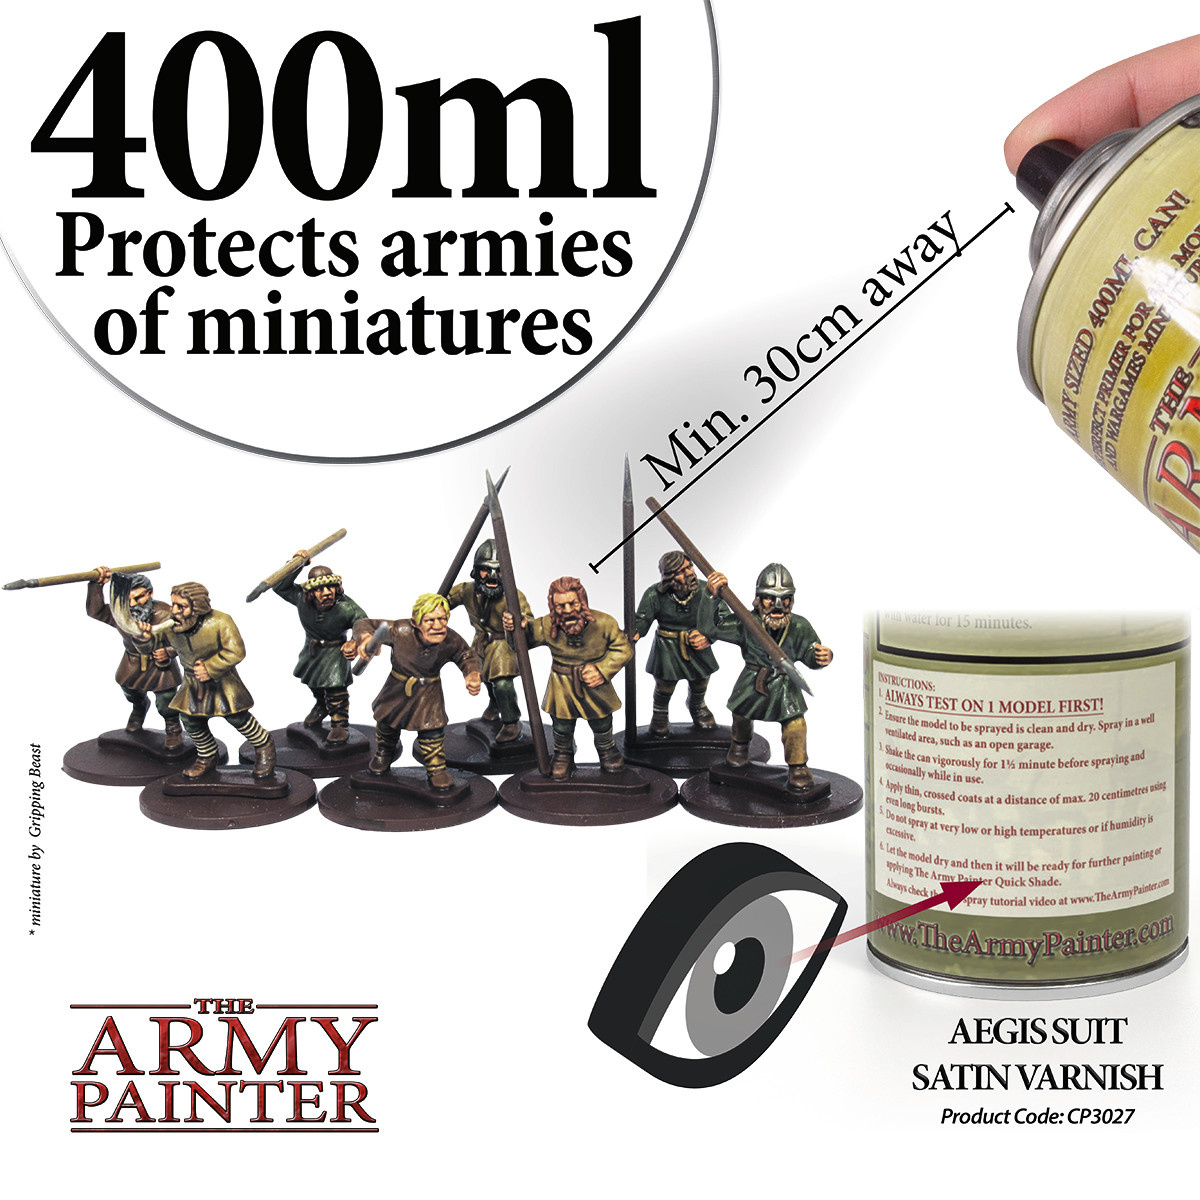 The Army Painter Varnish: Satin, Aegis Suit